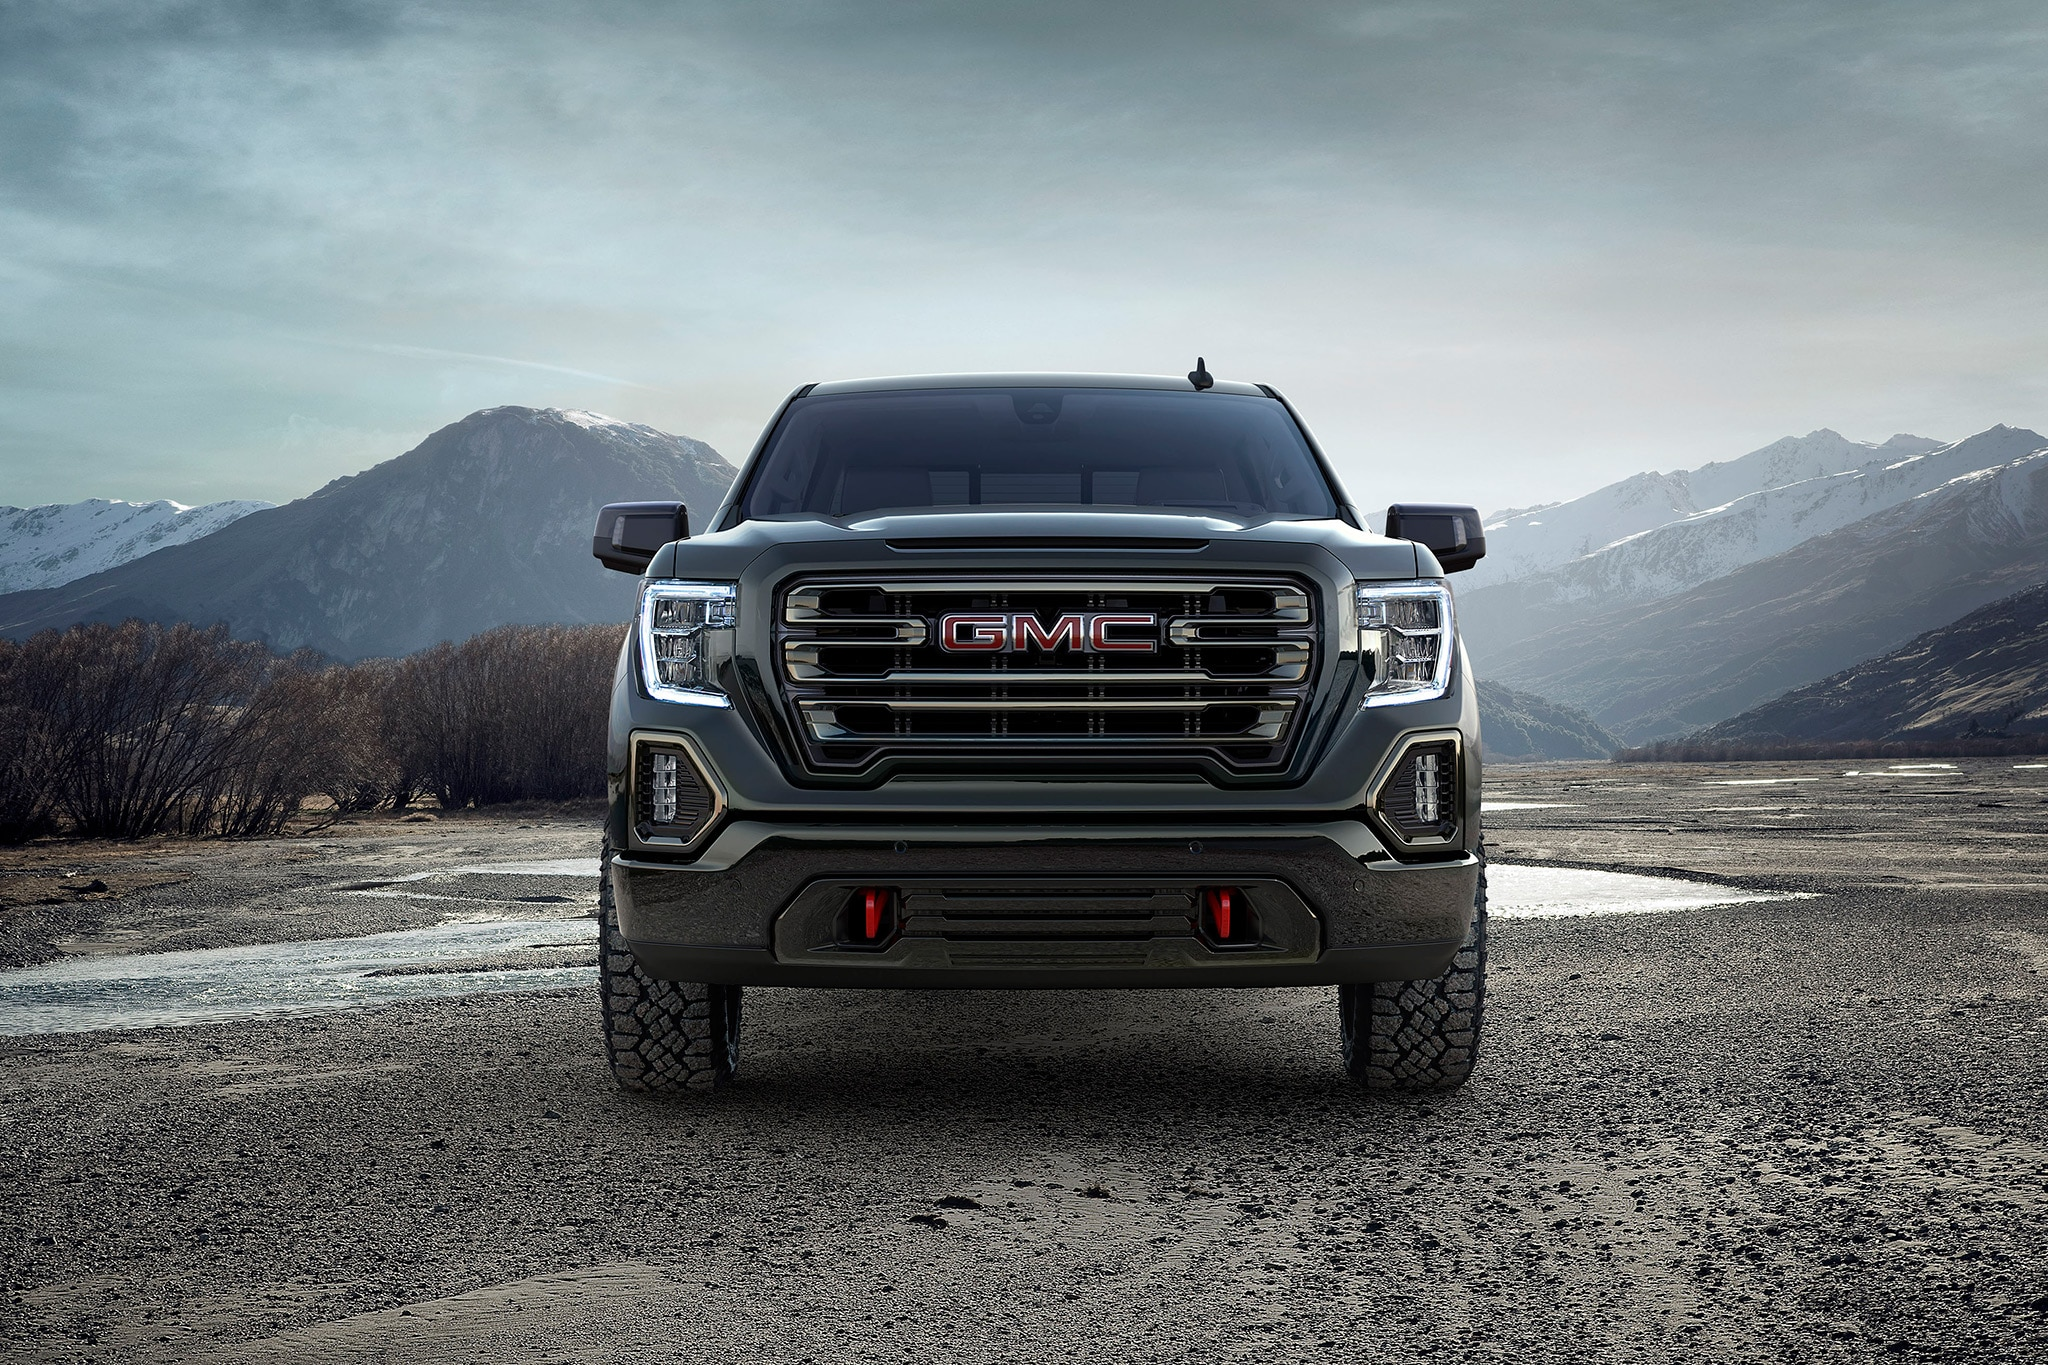 Meet the 2019 GMC Sierra AT4: Lifted and loaded